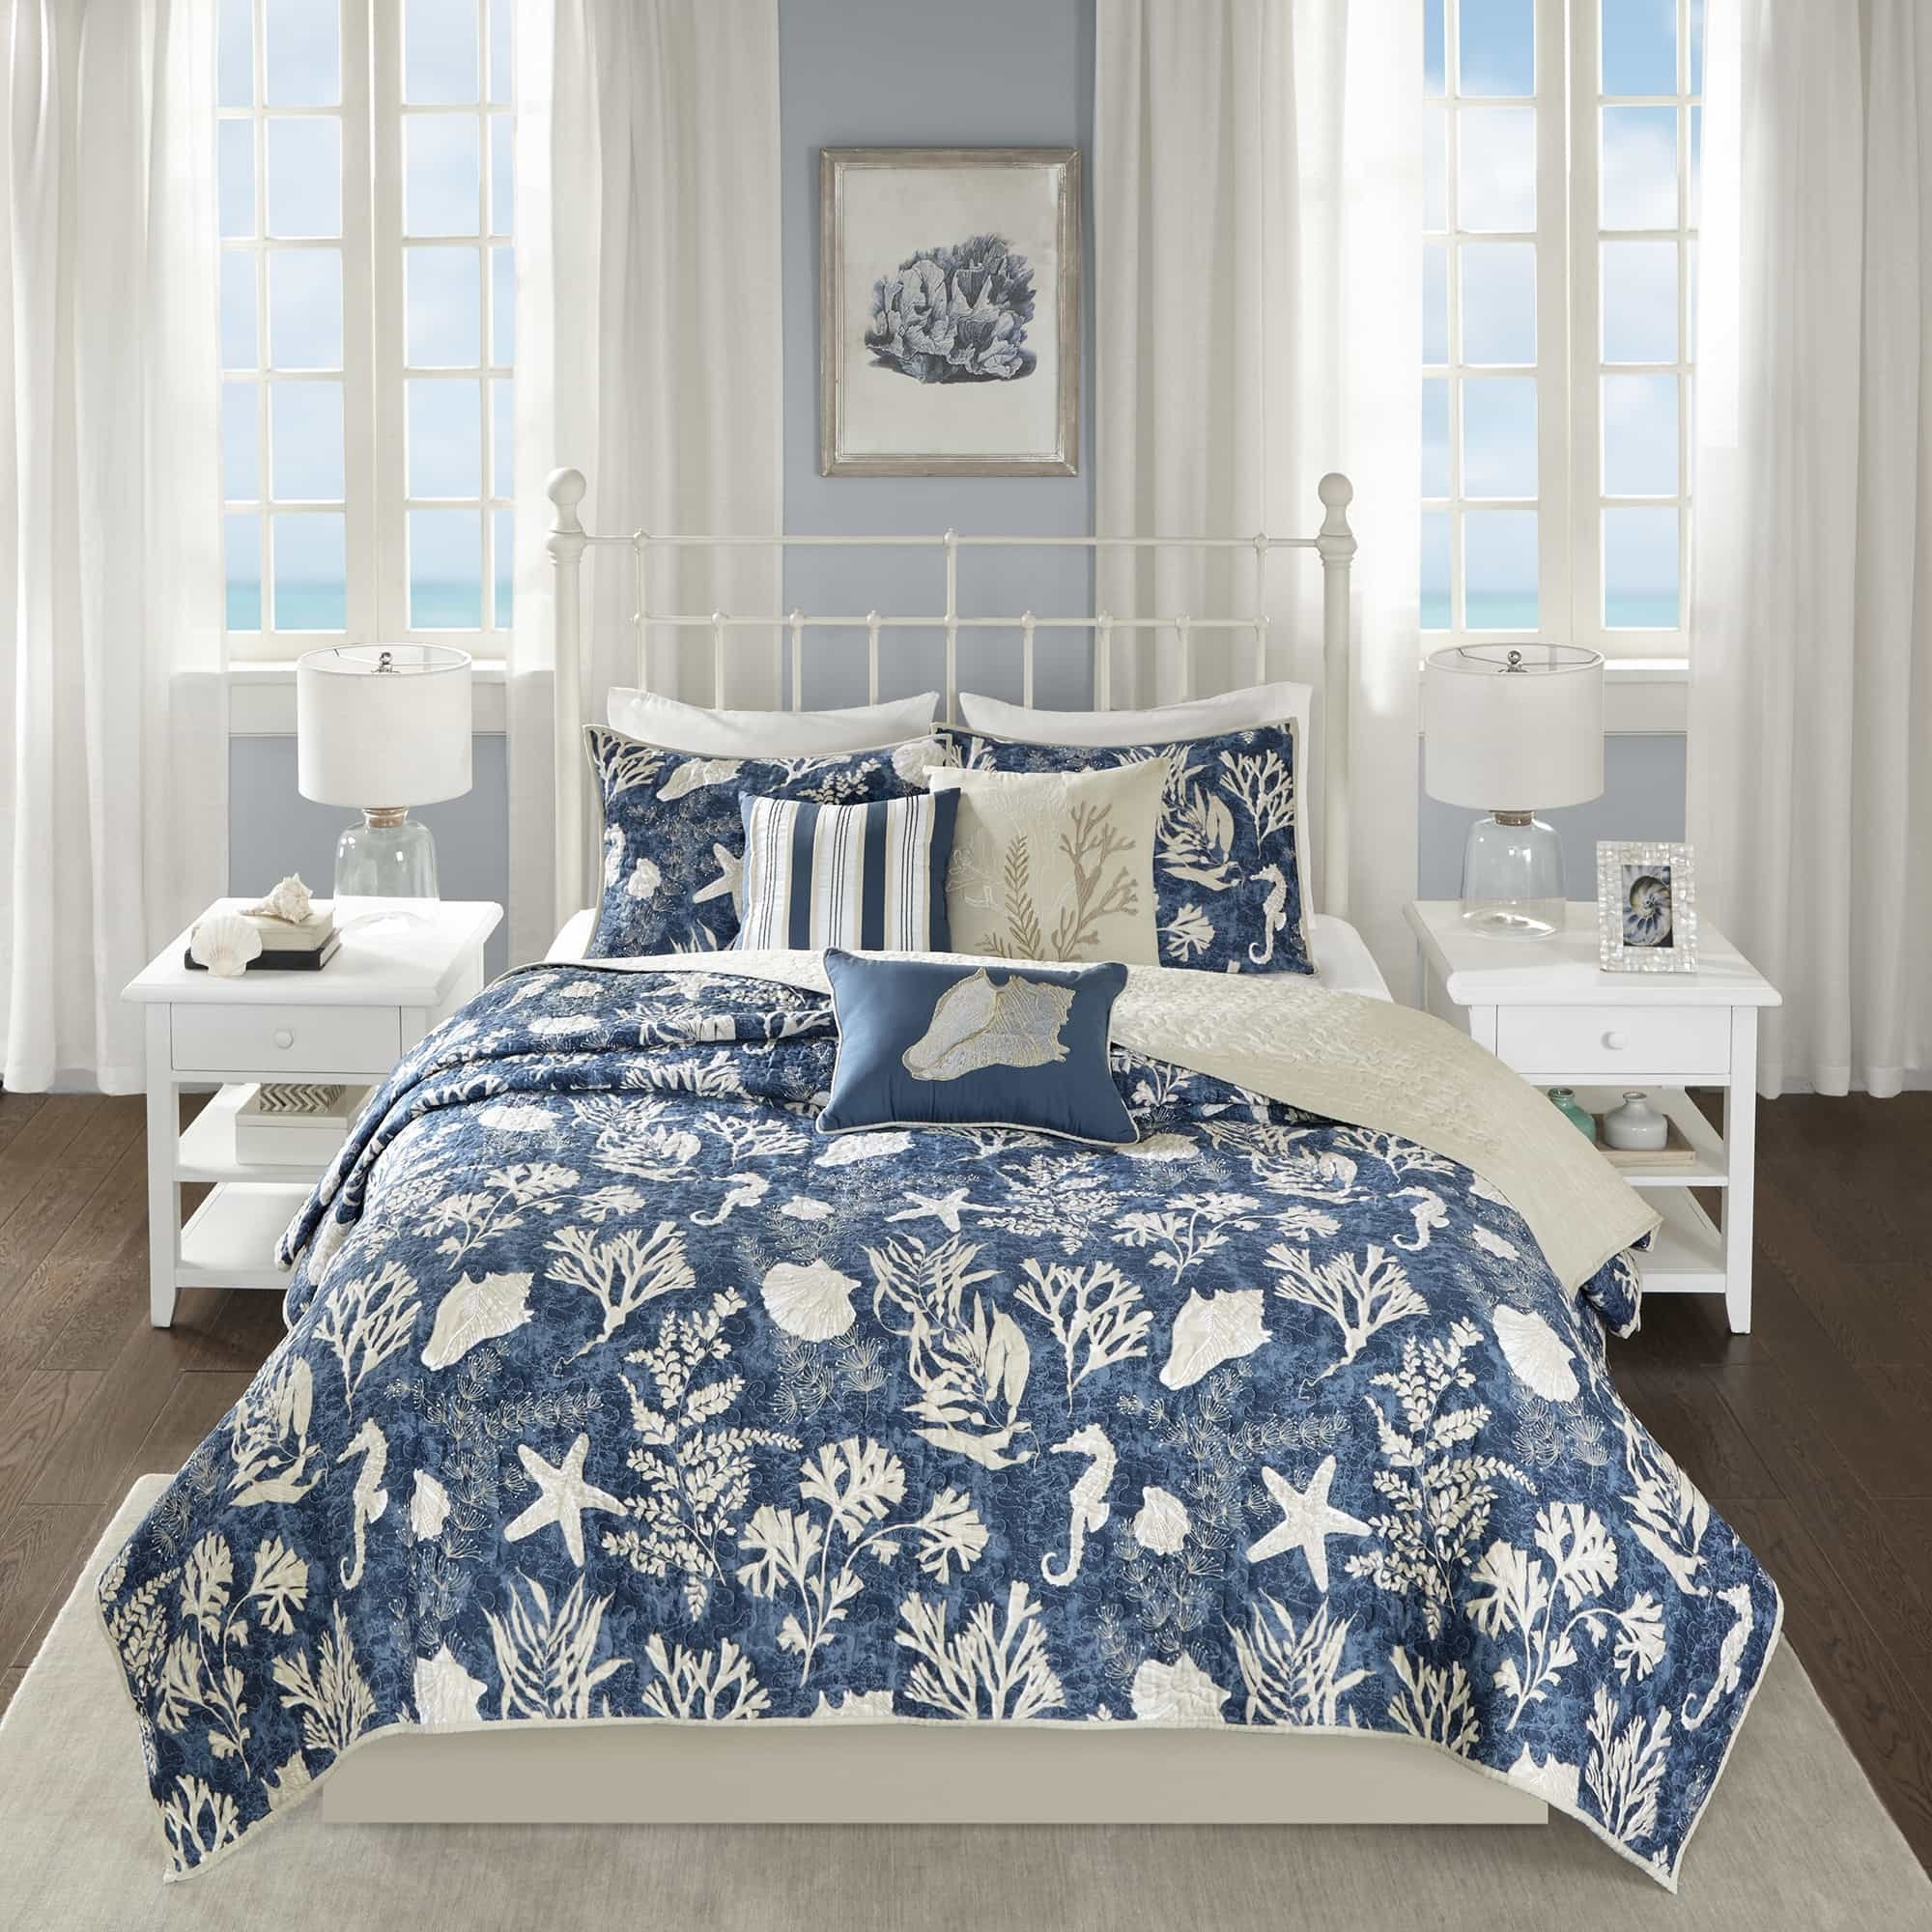 6 Piece Underwater Sea Creatures Theme Coverlet Set Full/Queen Size, Printed Coastal Coral Reefs Seahorse Sea Shells Starfish Bedding, Whimsical Rich Nautical Design, Fun Animals Pattern, Navy, Ivory